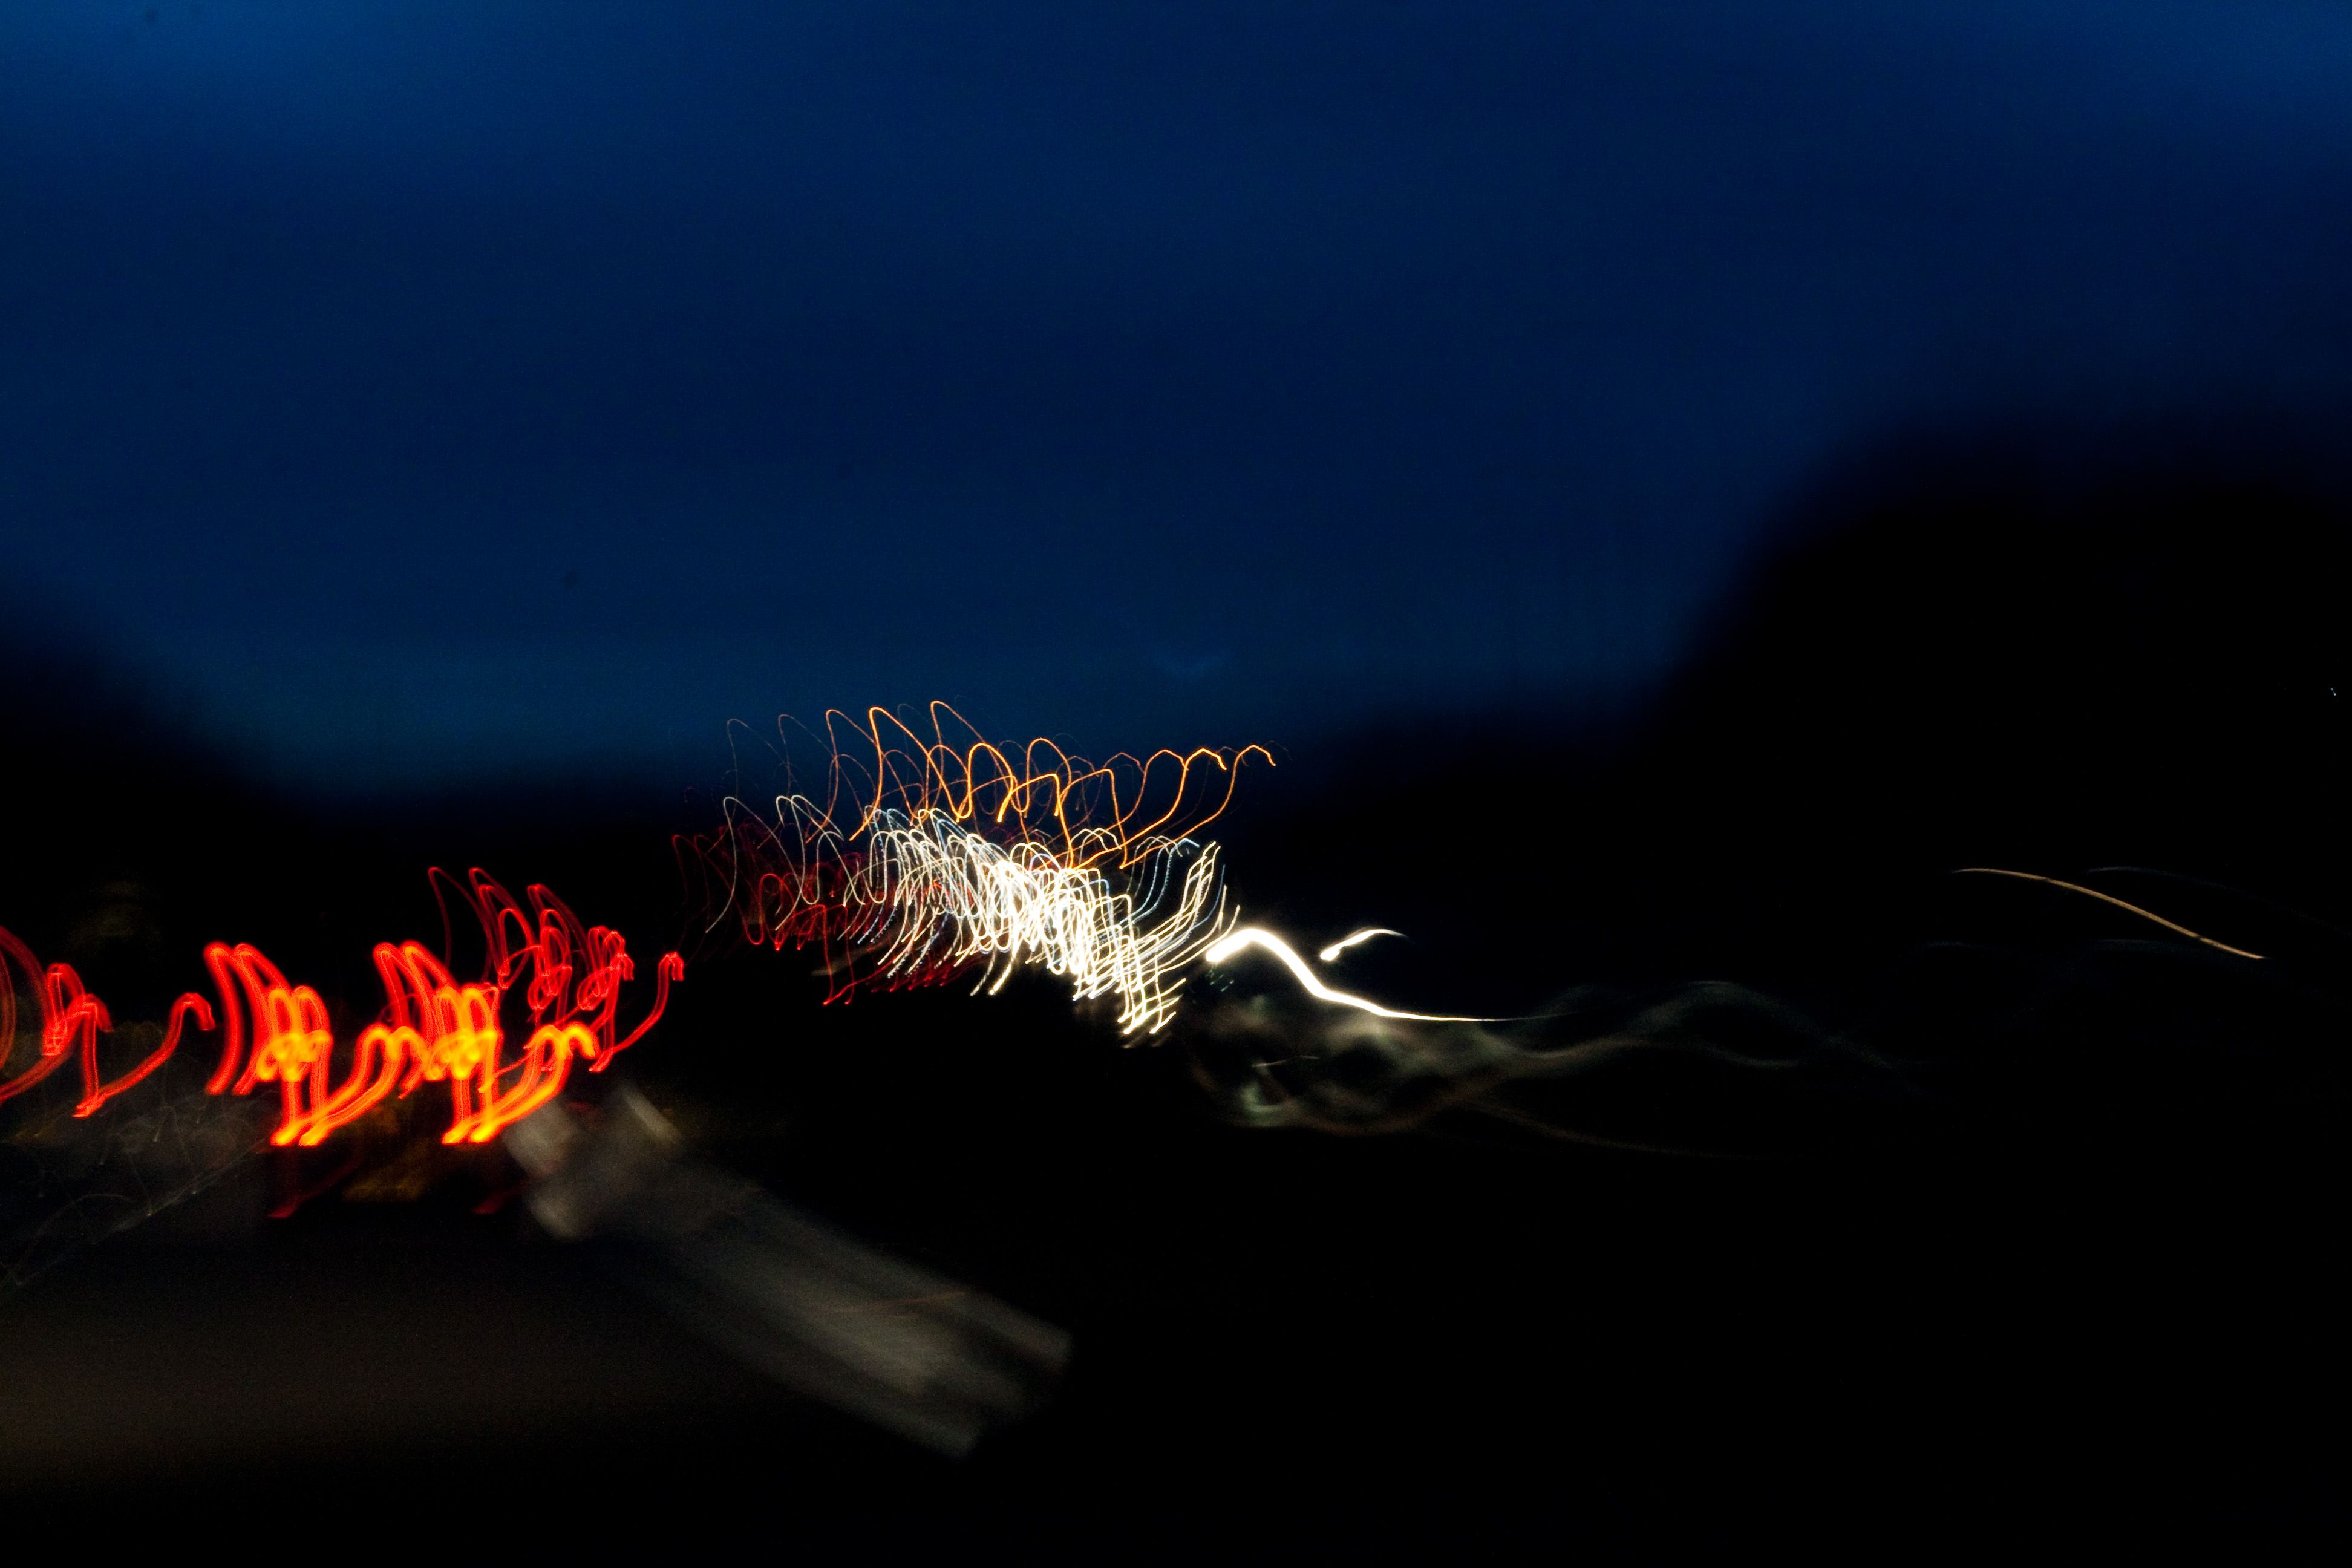 Day 86 - slow shutter speed on the motorway